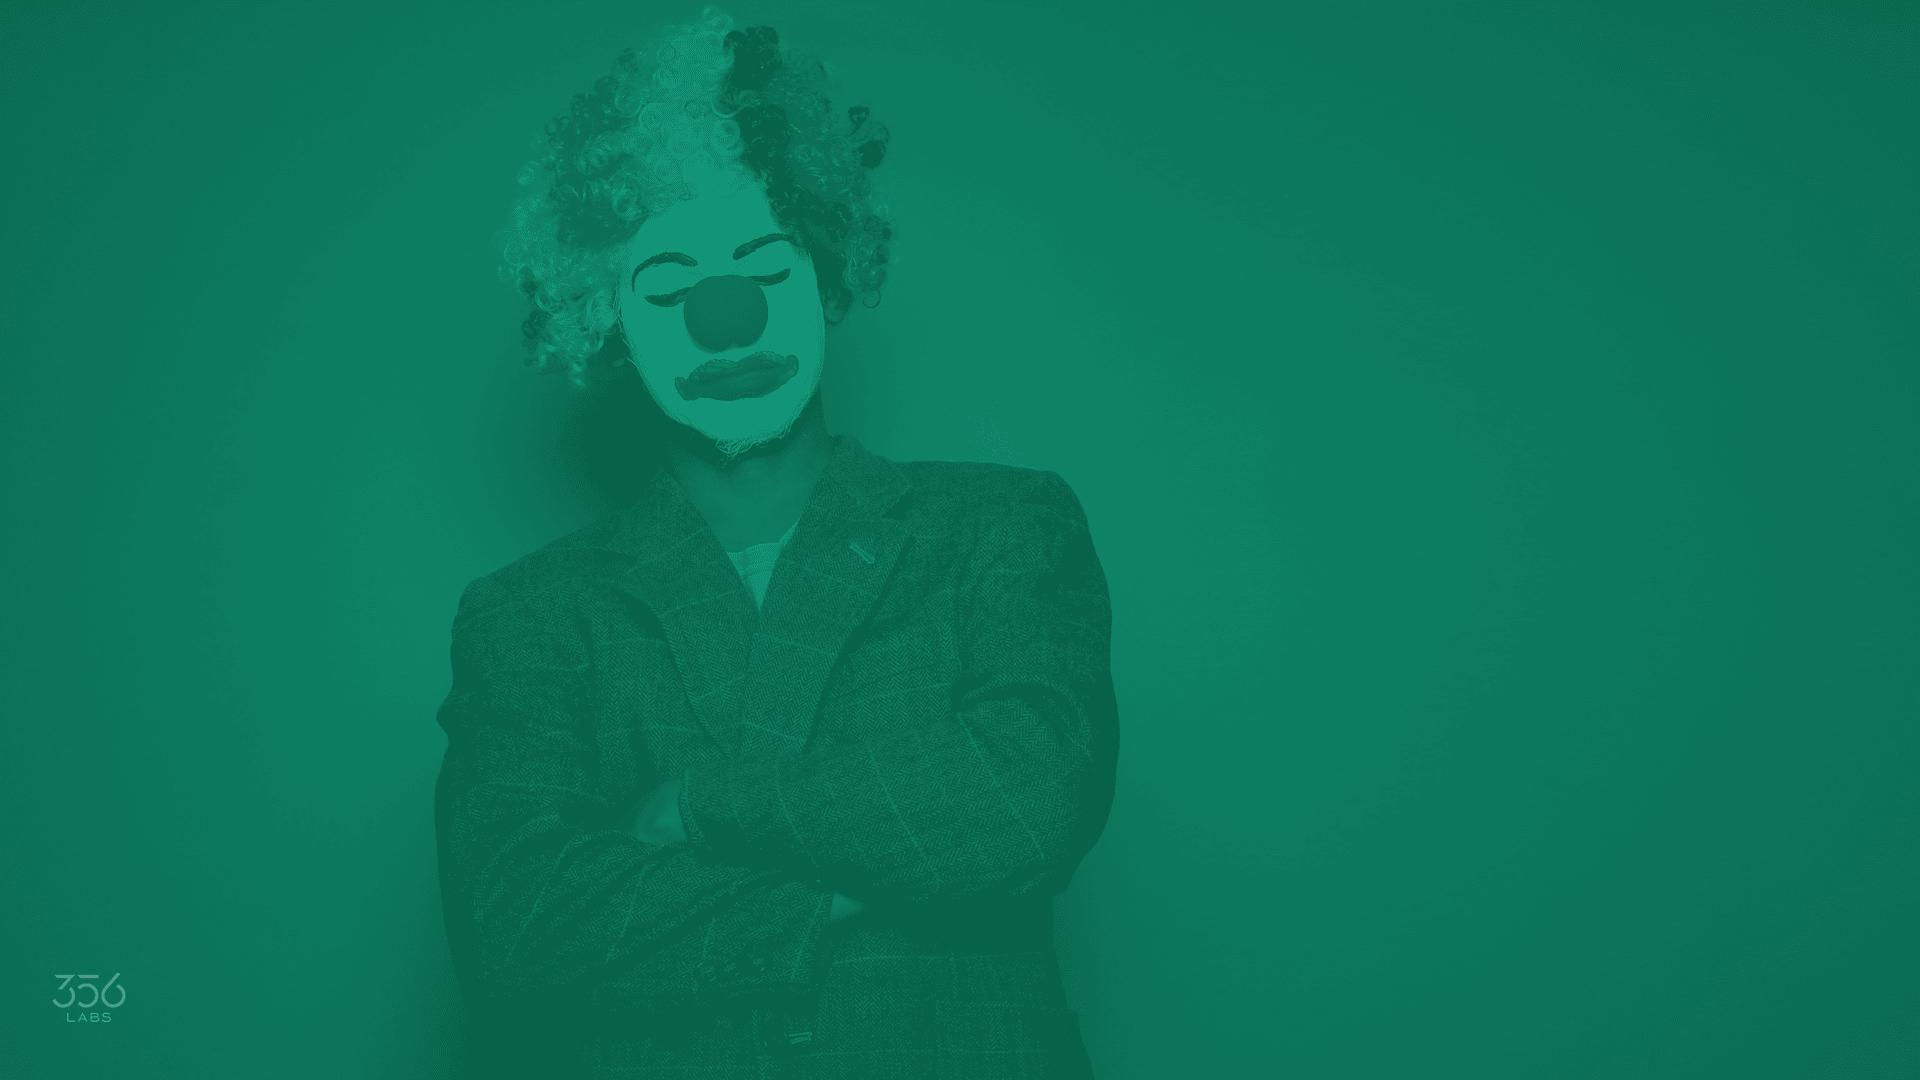 An image with a sad clown